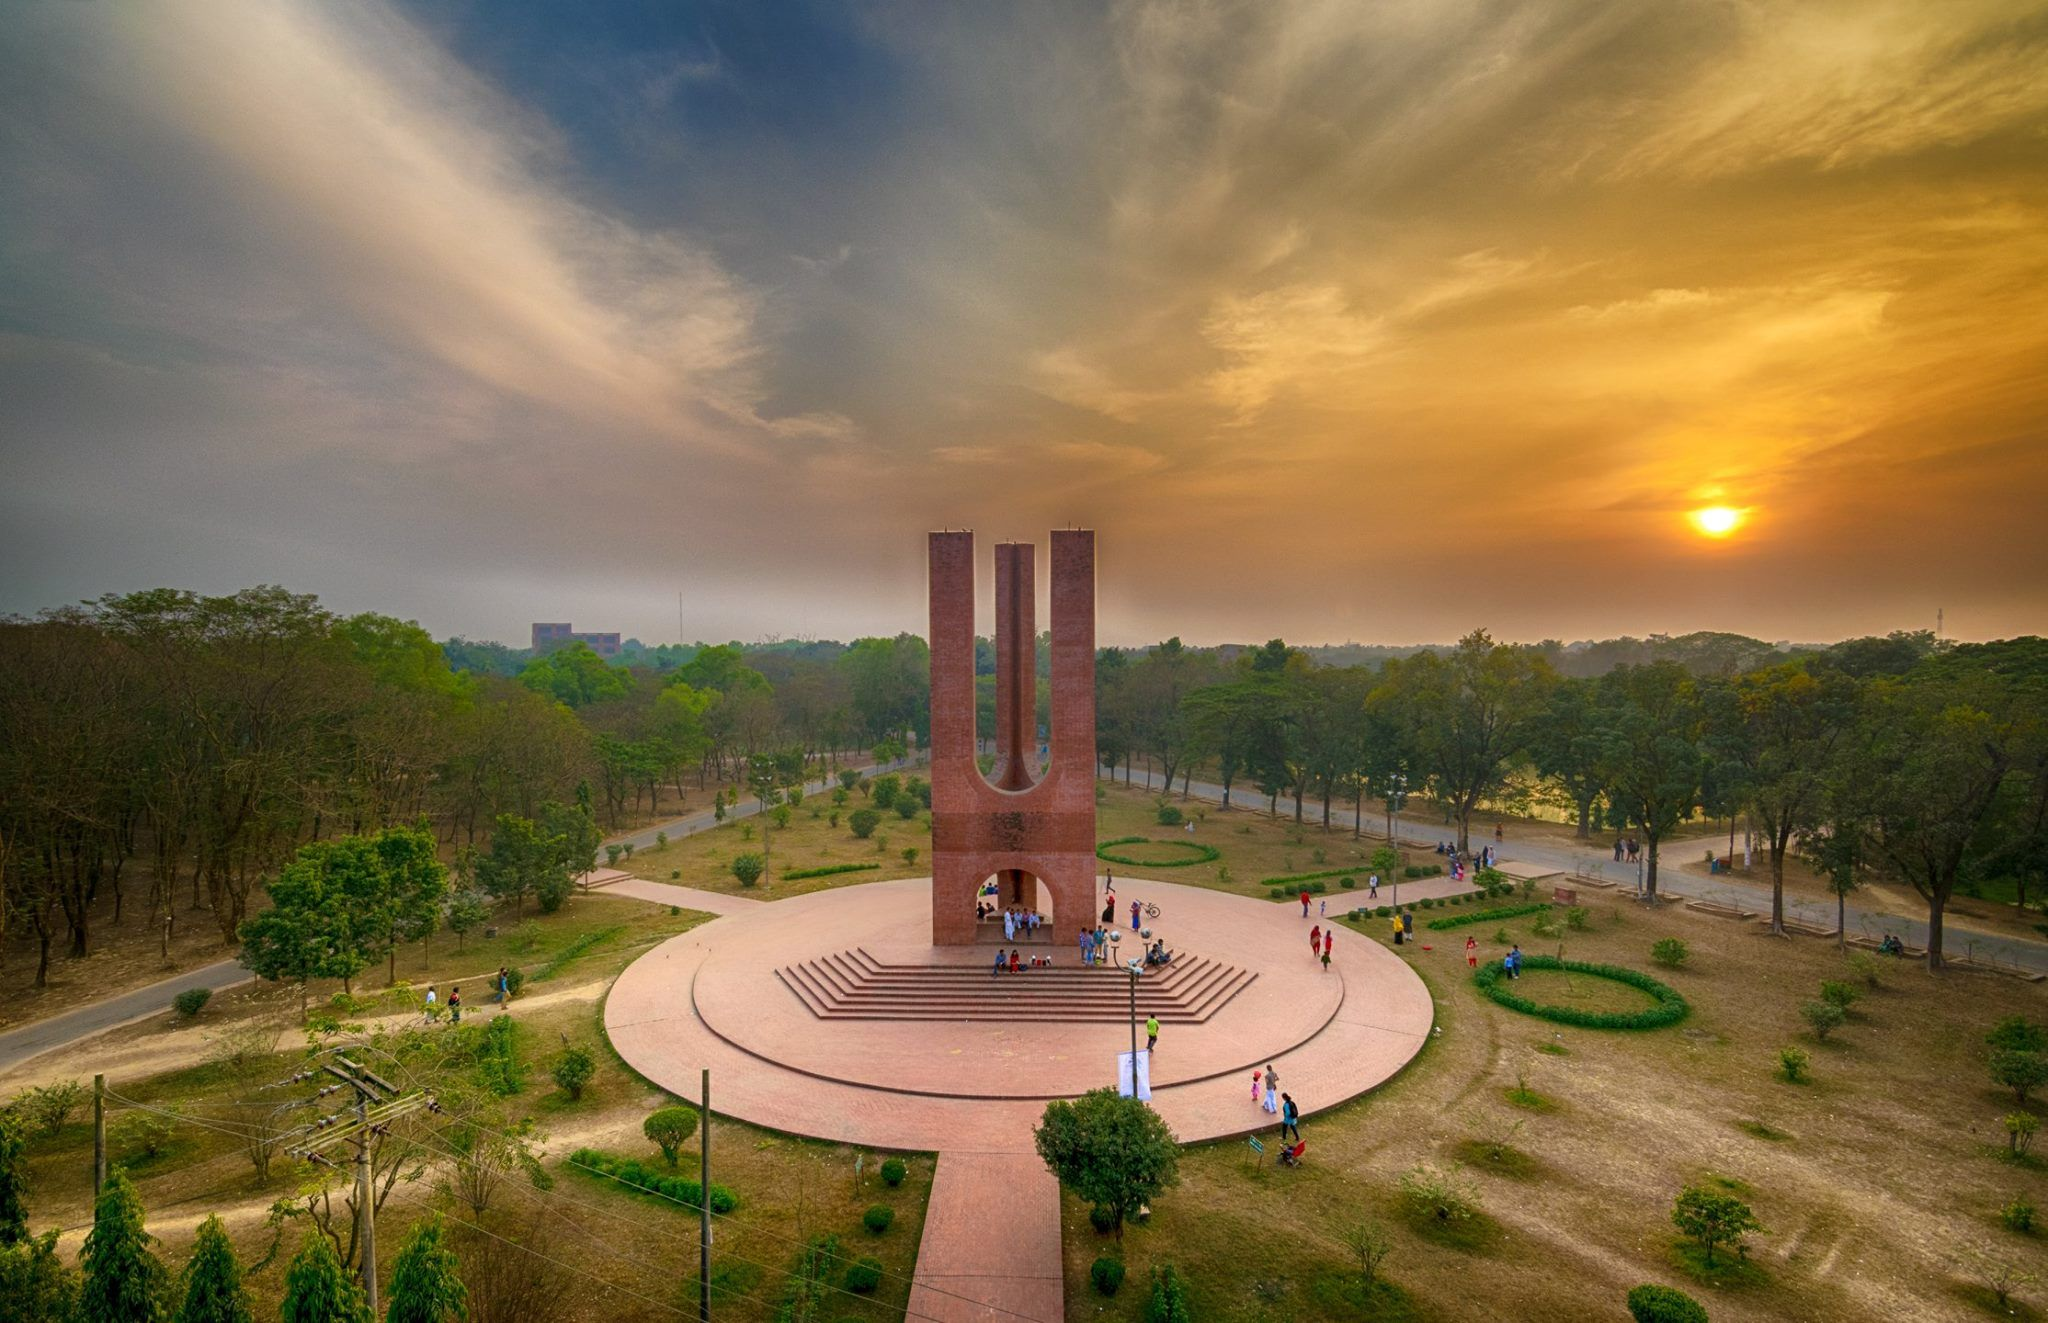 Picture Victoryday Of Bangladesh 16 Dec Happy Independence Day Wishes Background Images Wallpapers Pictures